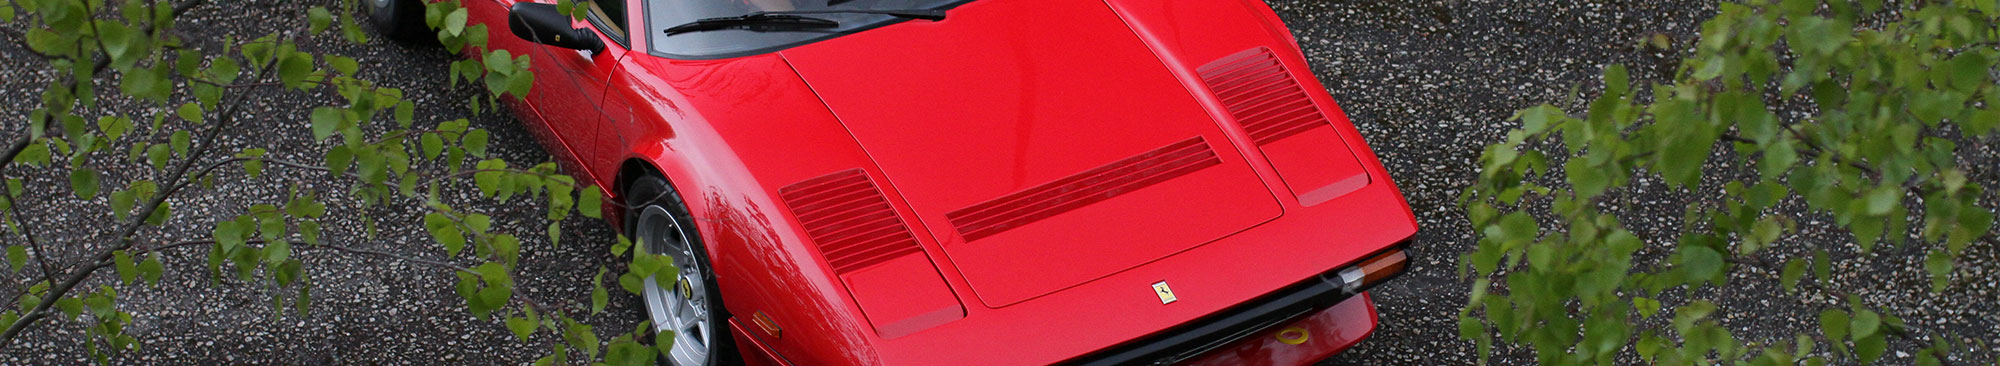 Ferrari 308 GTB QV behind the trees and leafs. Front page of Fascinating Cars